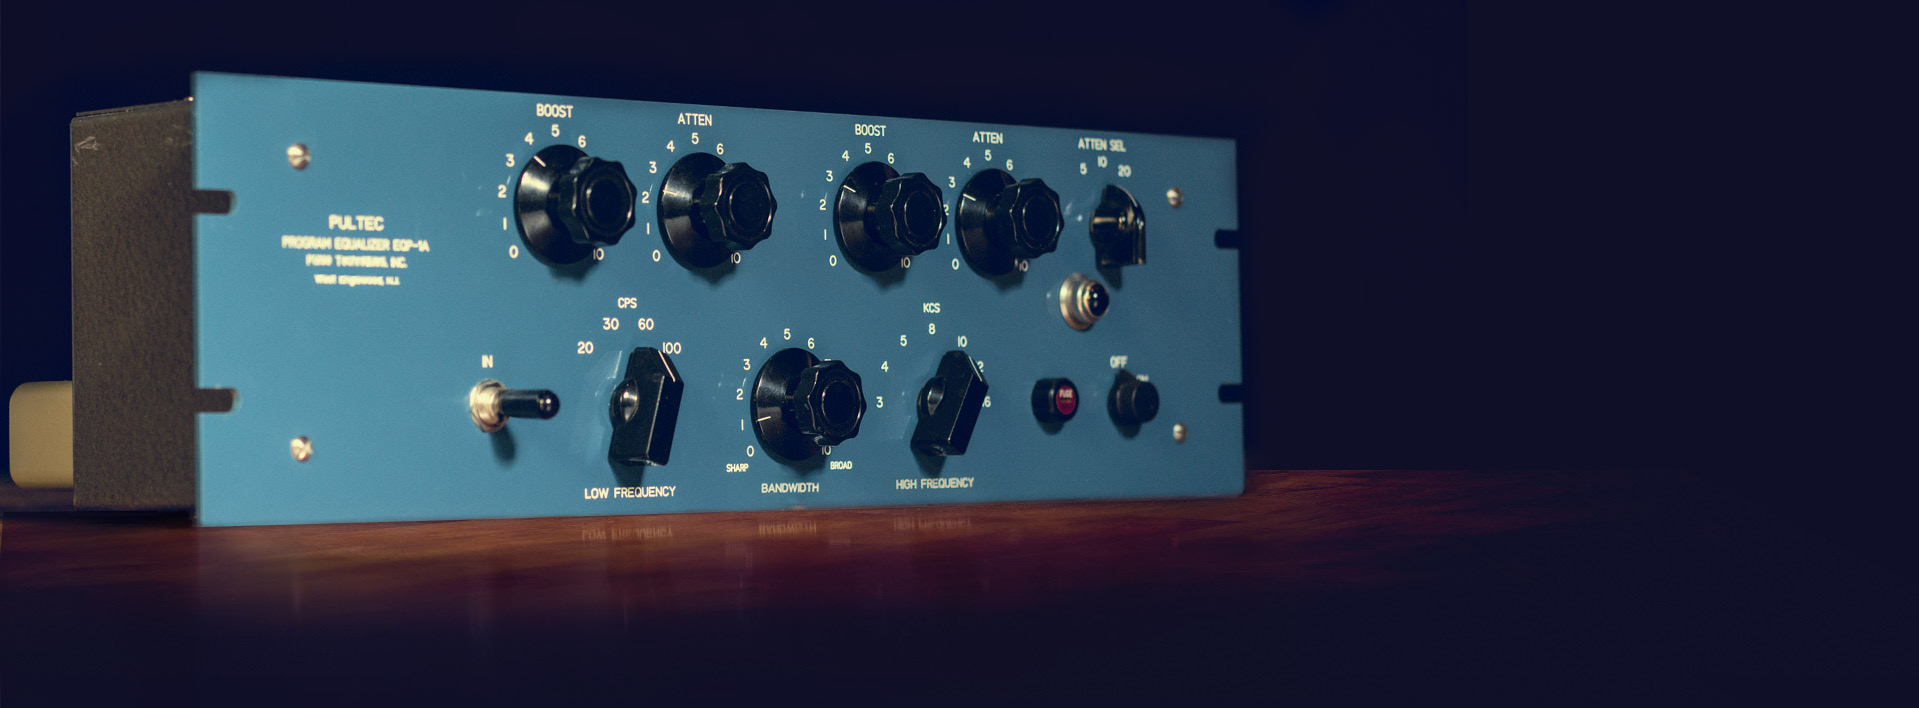 pultec-eqp1a-program-tube-eualizer-diy-analogvibes-front